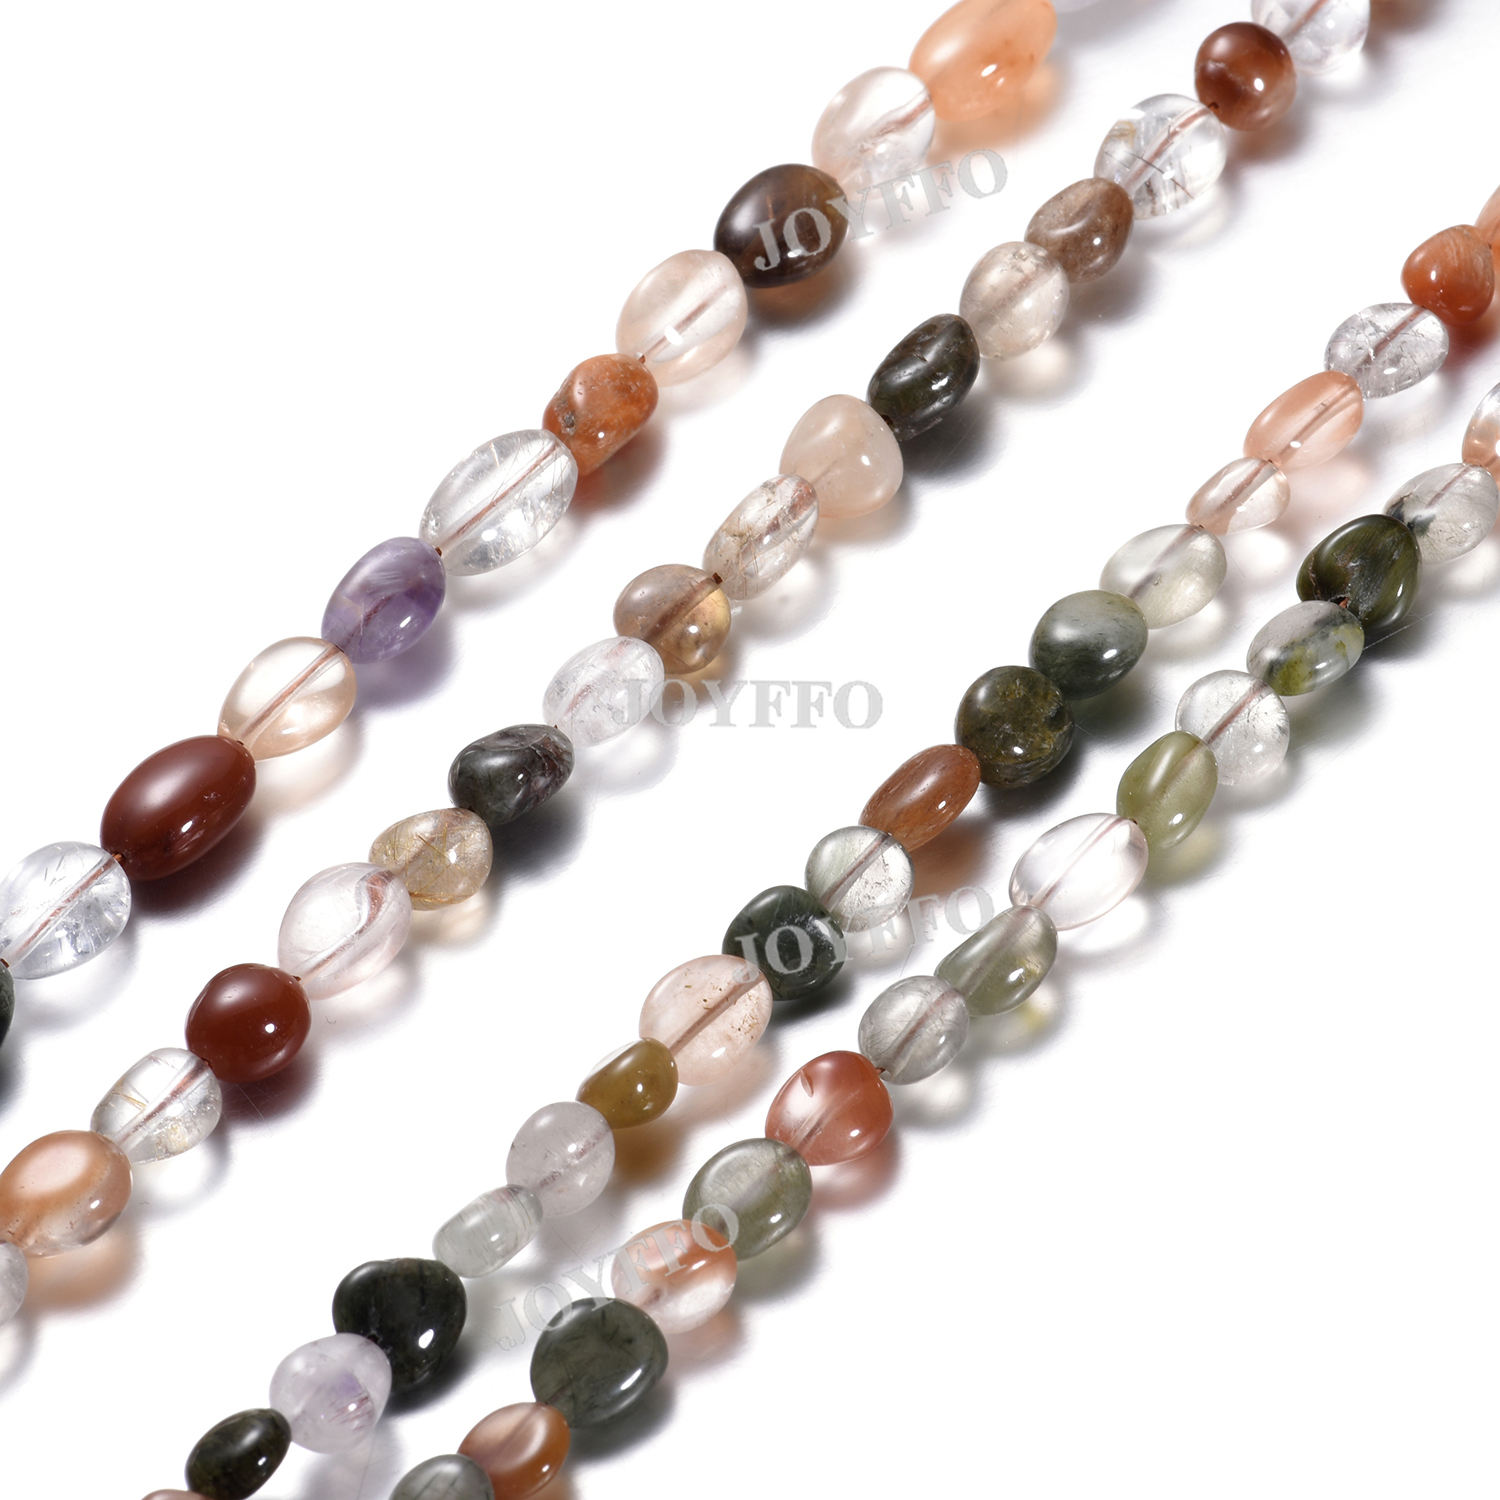 2020 Natural Quartz Crystal Beaded Faceted Crystal Mix Rutilated Quartz Loose Beads For DIY Bracelet Necklace Jewelry Making